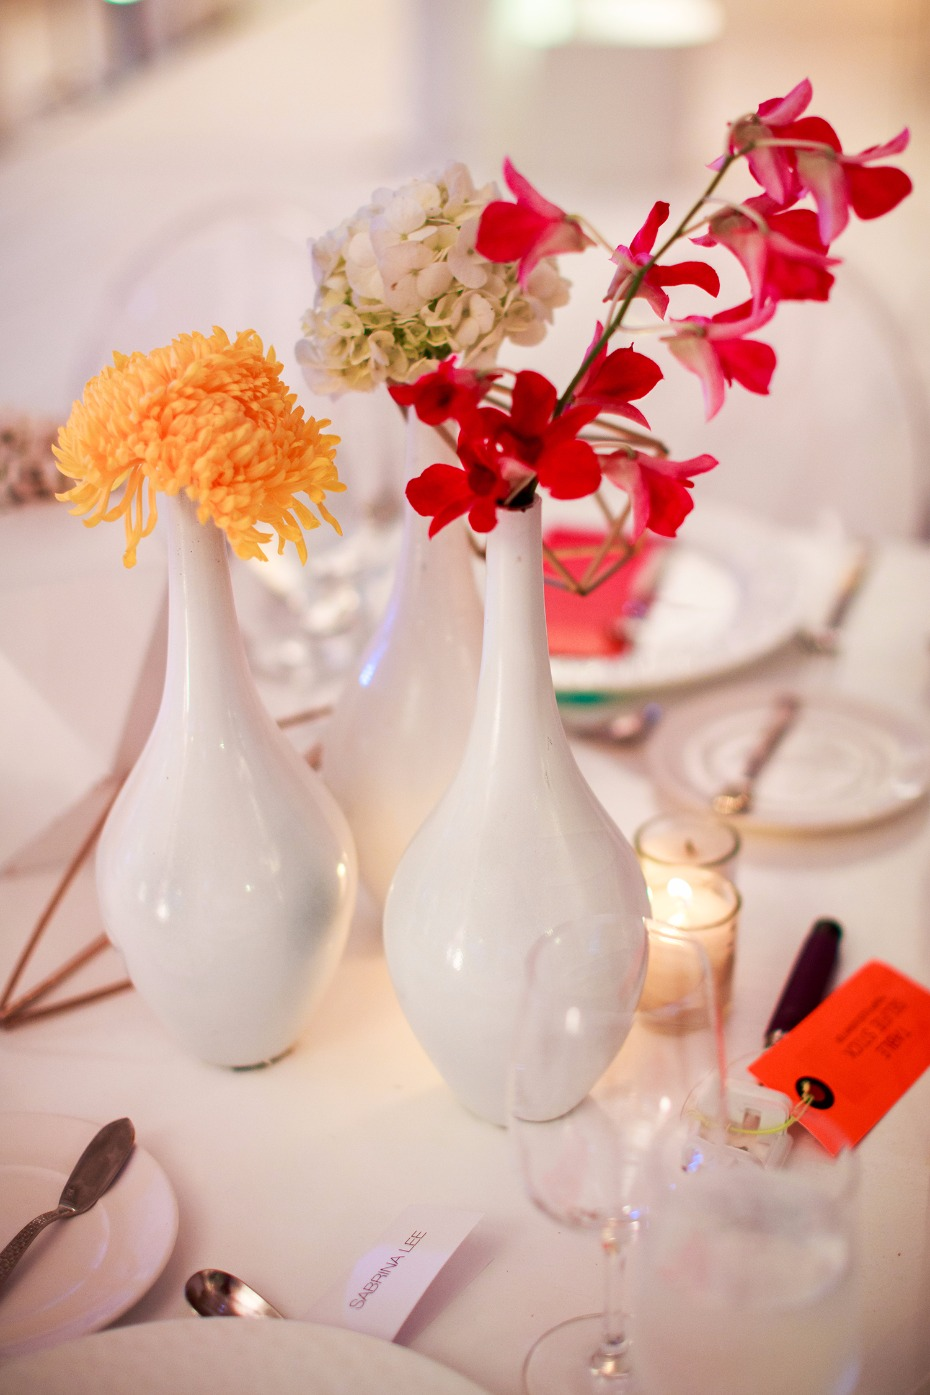 Simple white vases with buds